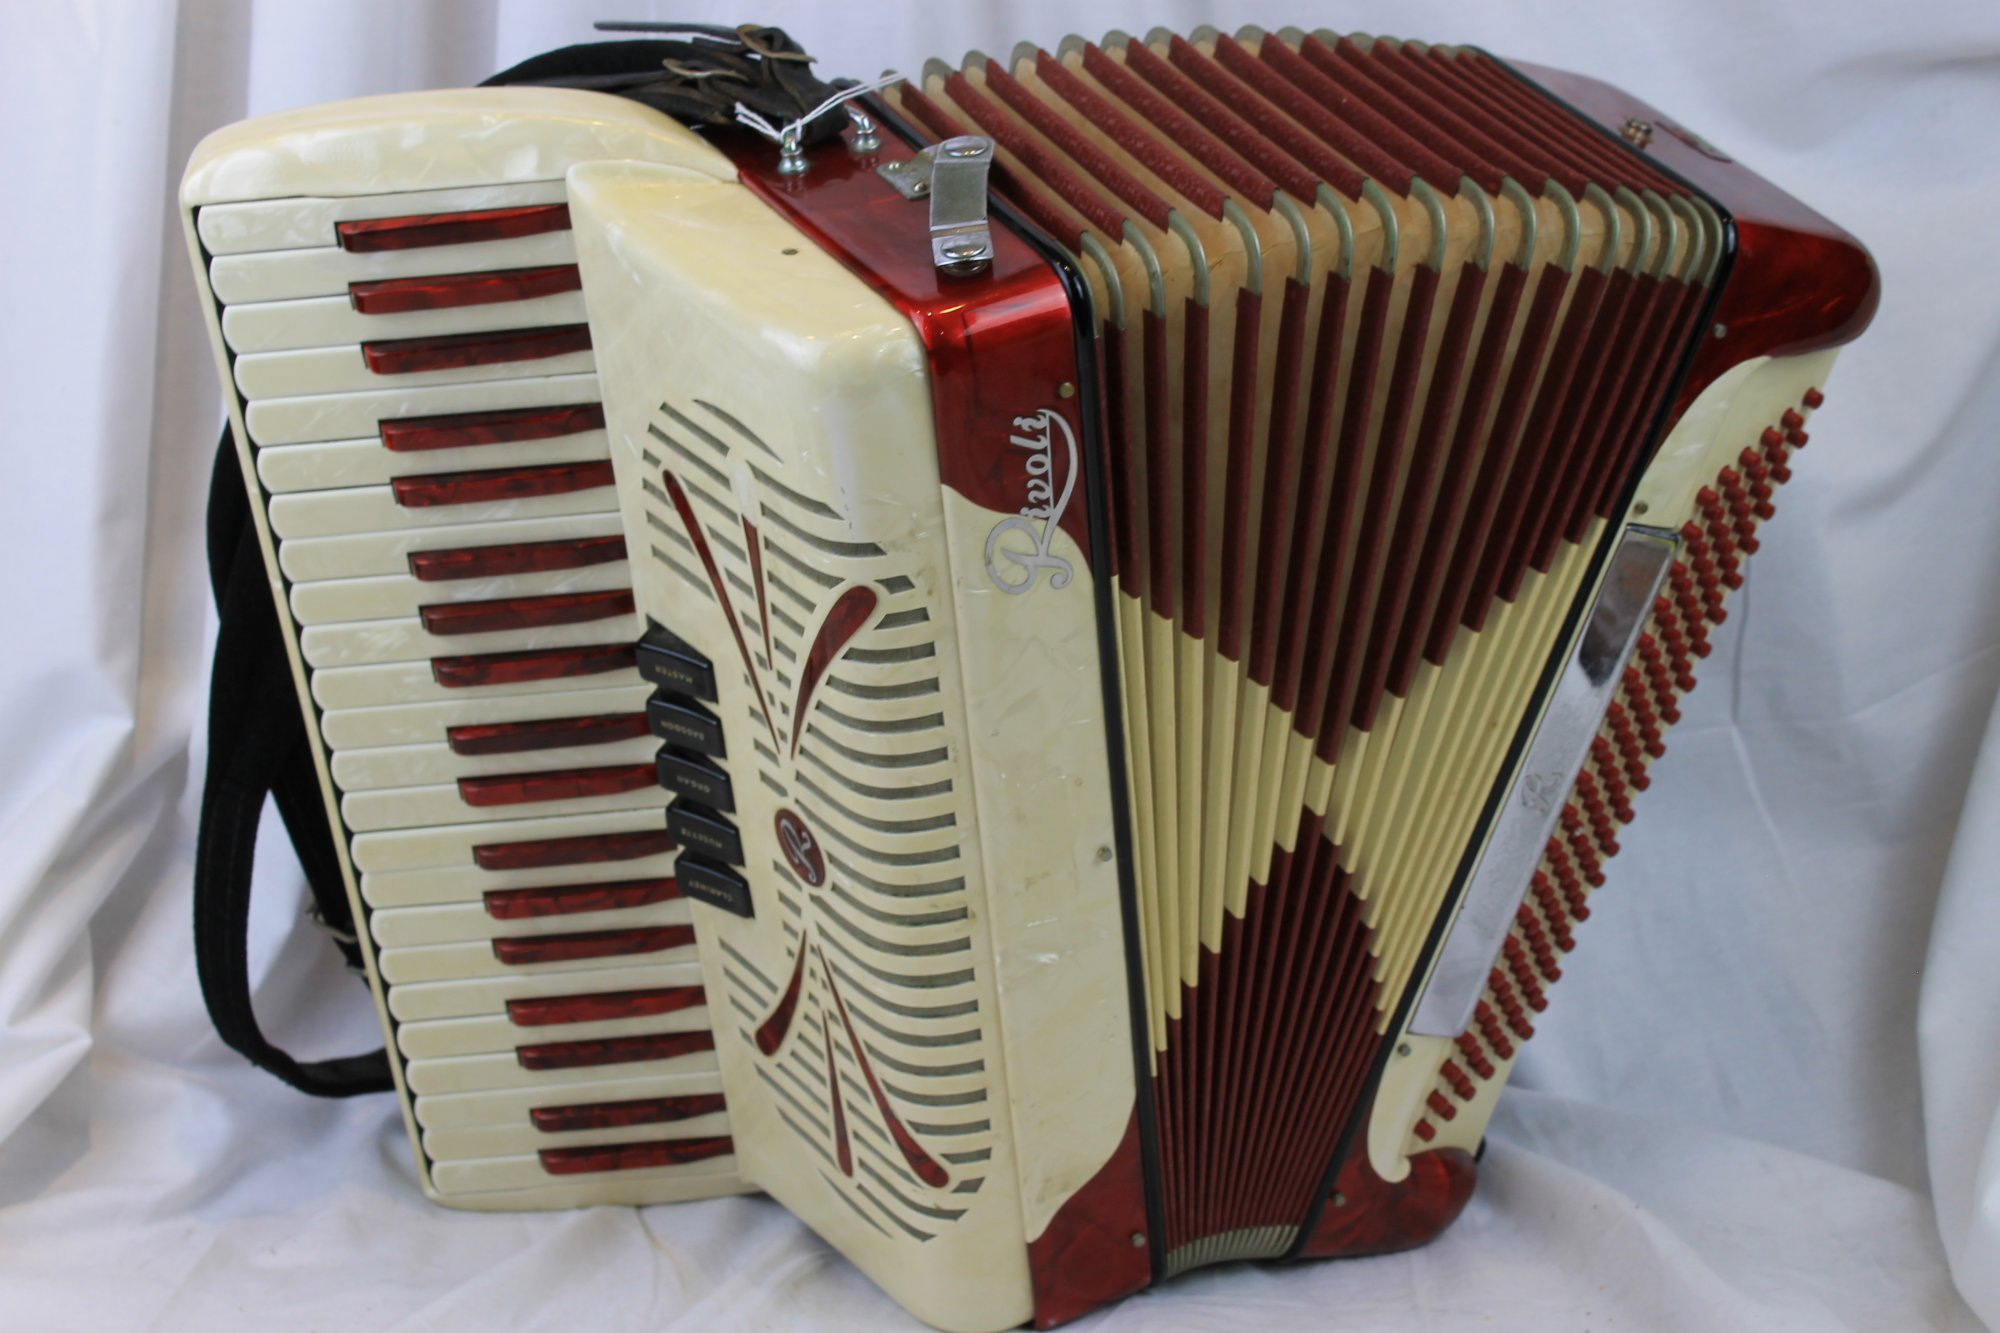 3010 - Candy Stripe Rivoli Piano Accordion LMH 41 120